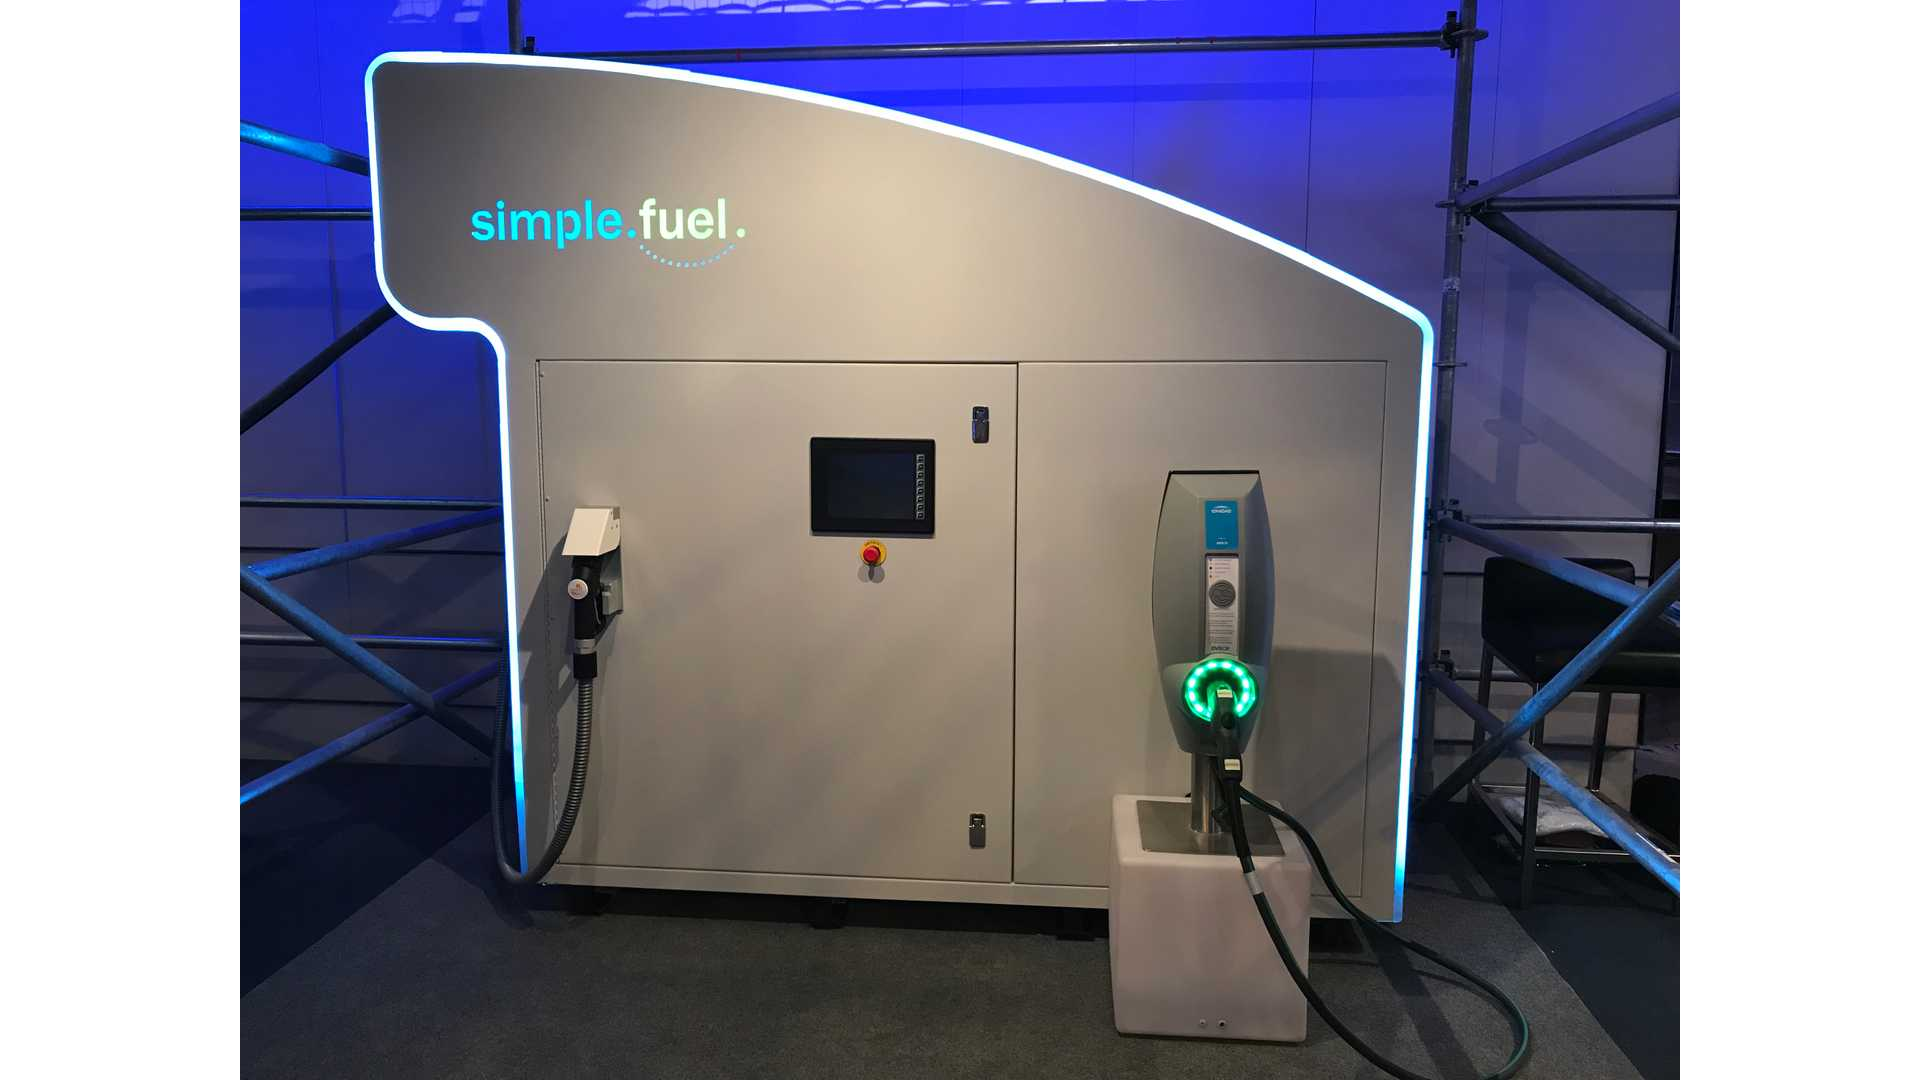 IVYS Simple Fuel Station Offers Homemade Hydrogen For